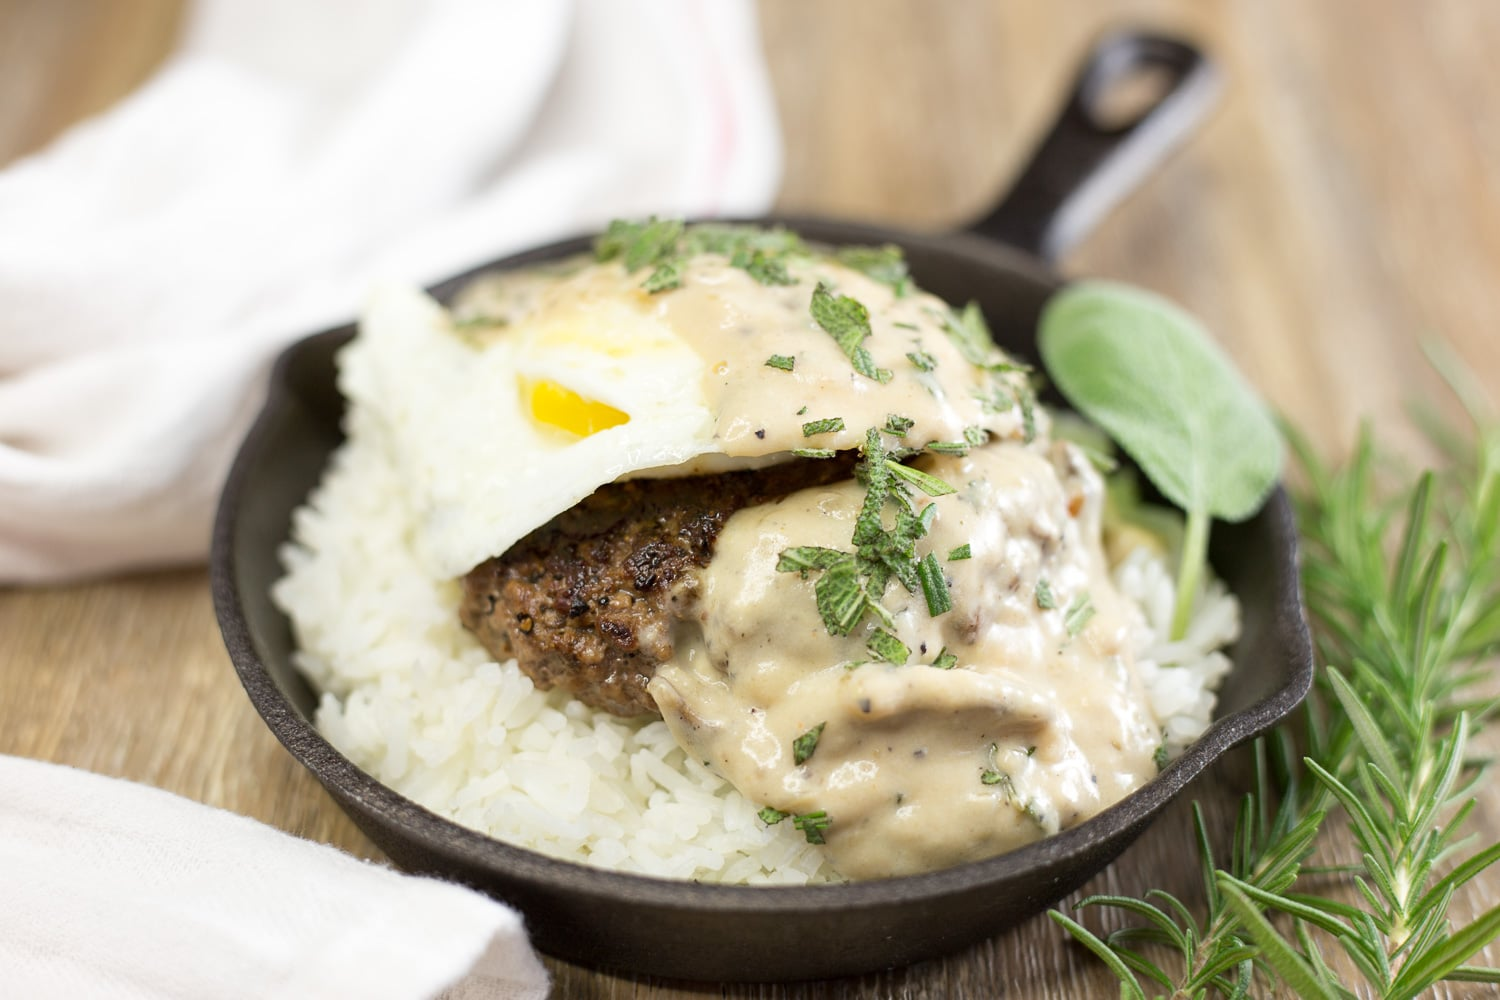 Get cuckoo for loco moco! Let this contemporary Hawaiian dish carry you away to the islands! |artzyfoodie.com|